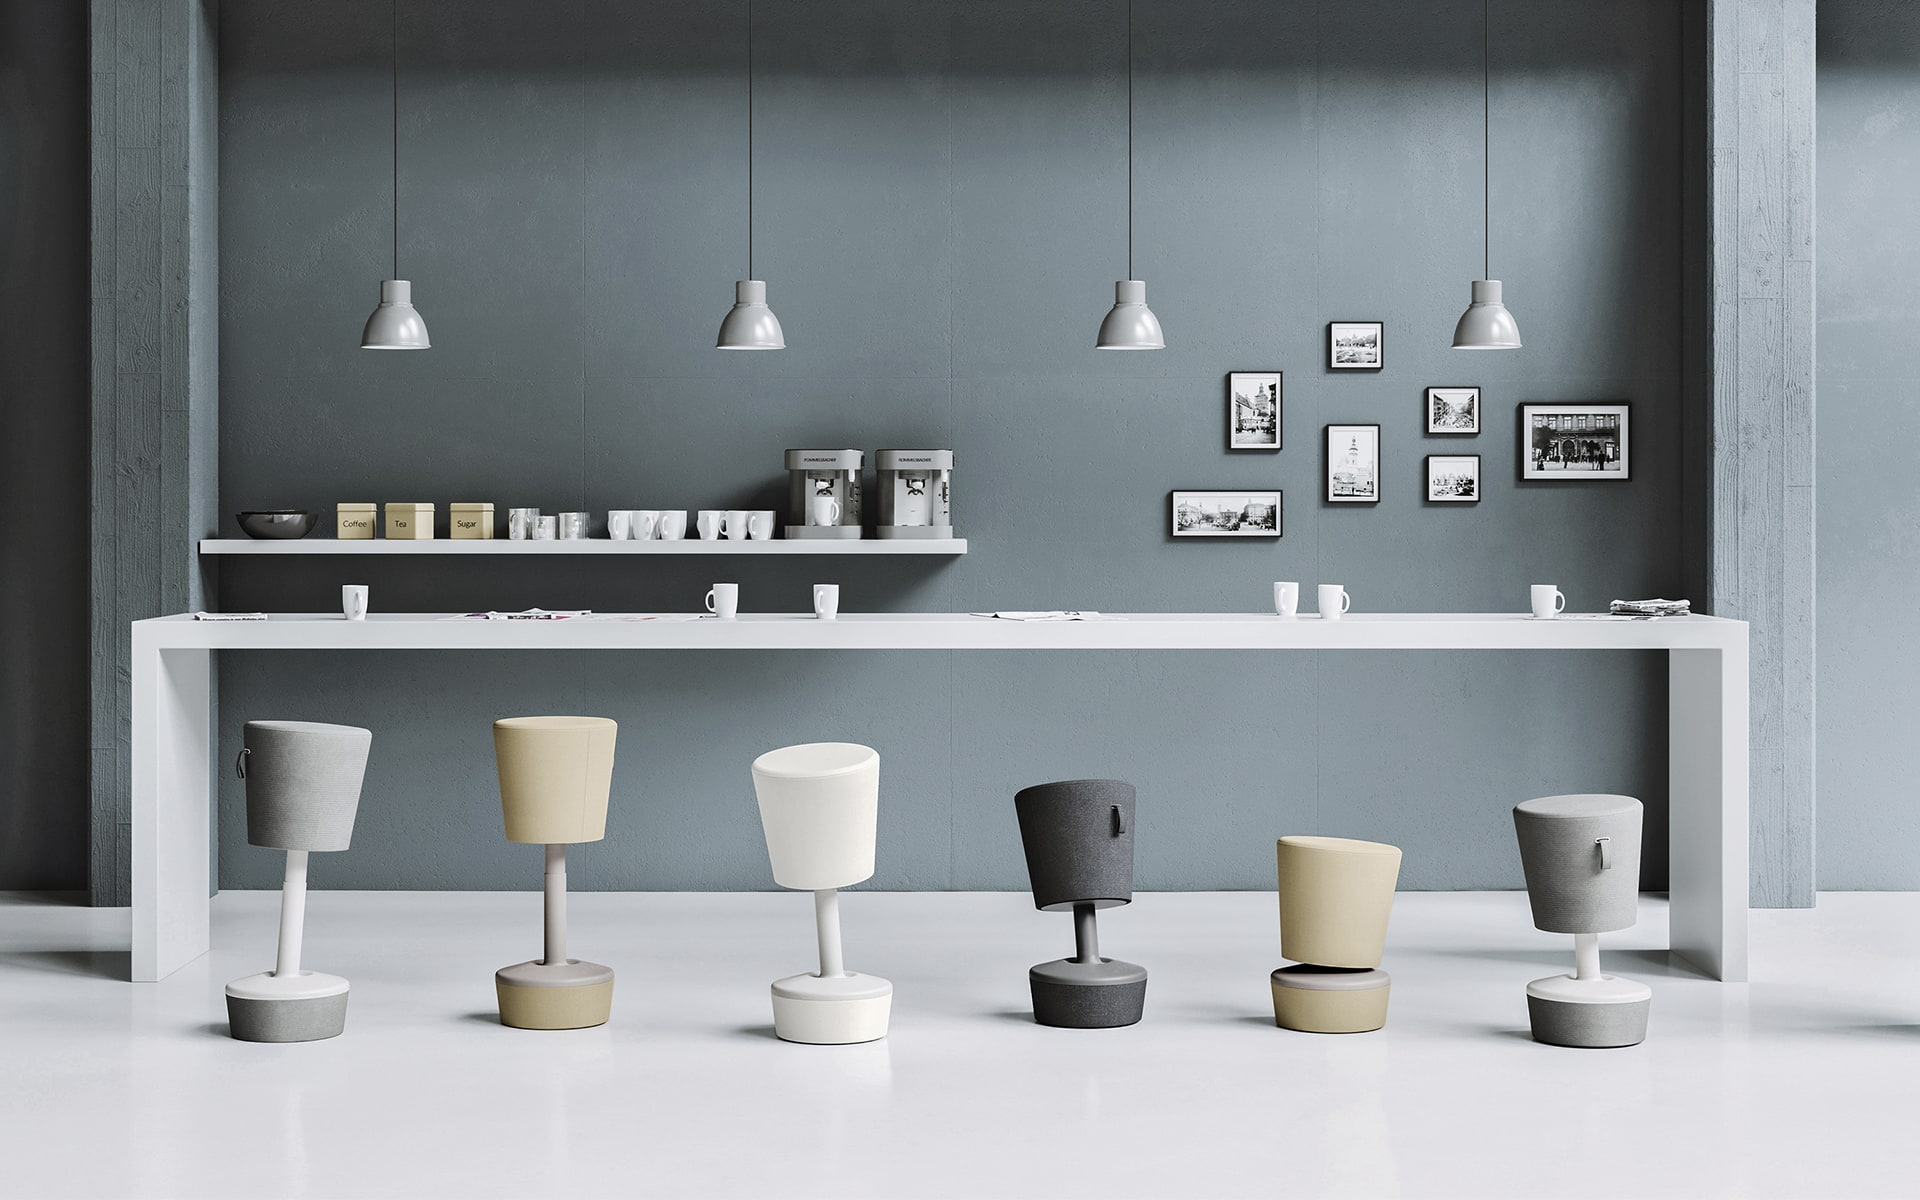 Six Profim Mickey stools by ITO Design of different heights in natural colors in modern standing workspace